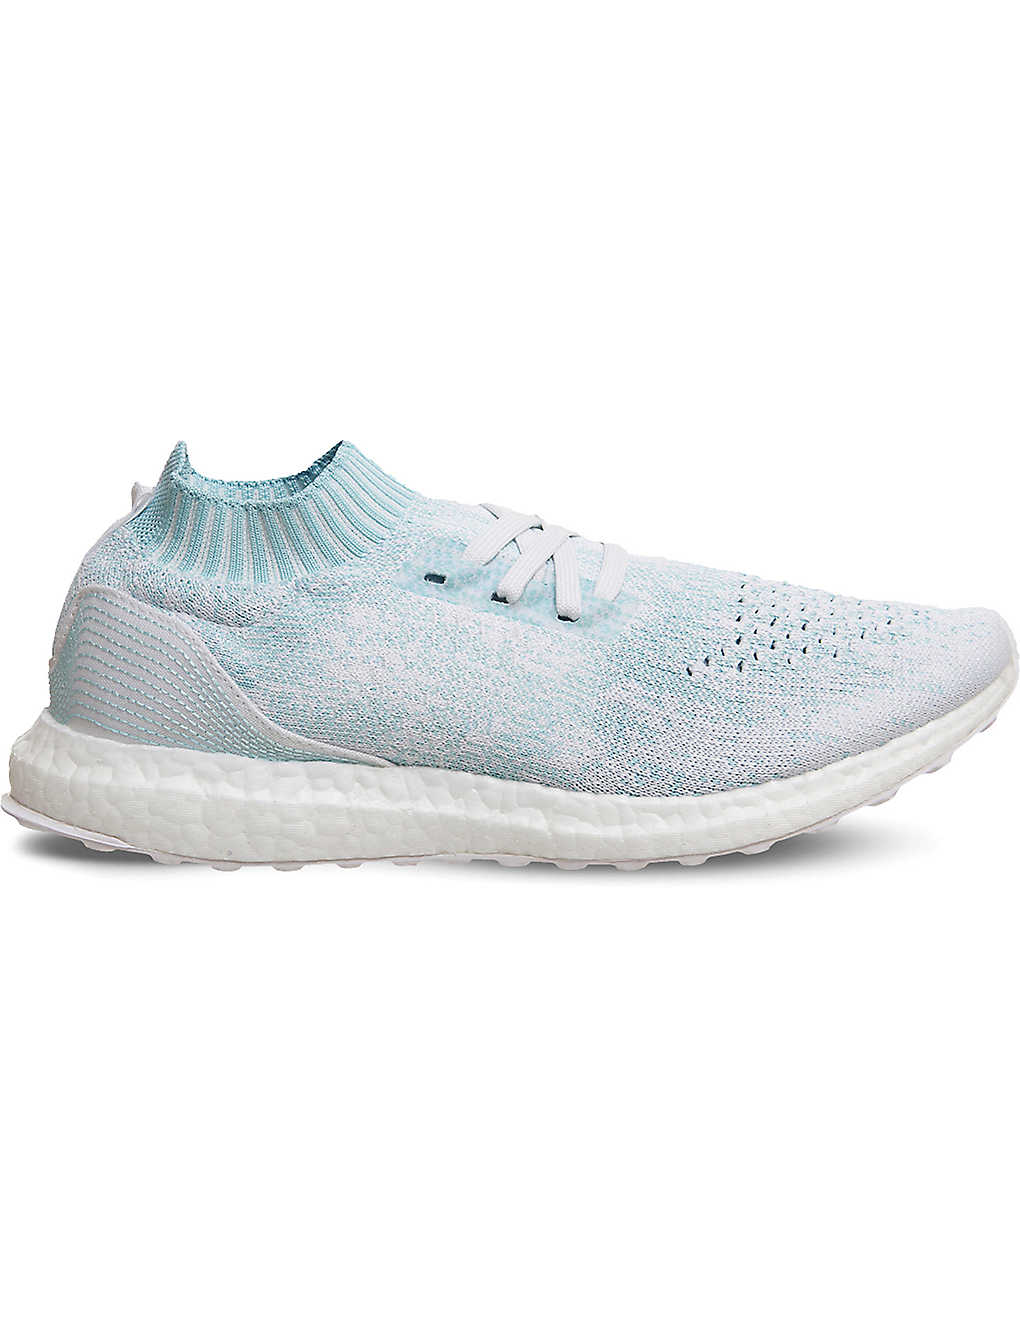 b89cdd545bf ADIDAS - UltraBOOST Uncaged Parley Primeknit trainers